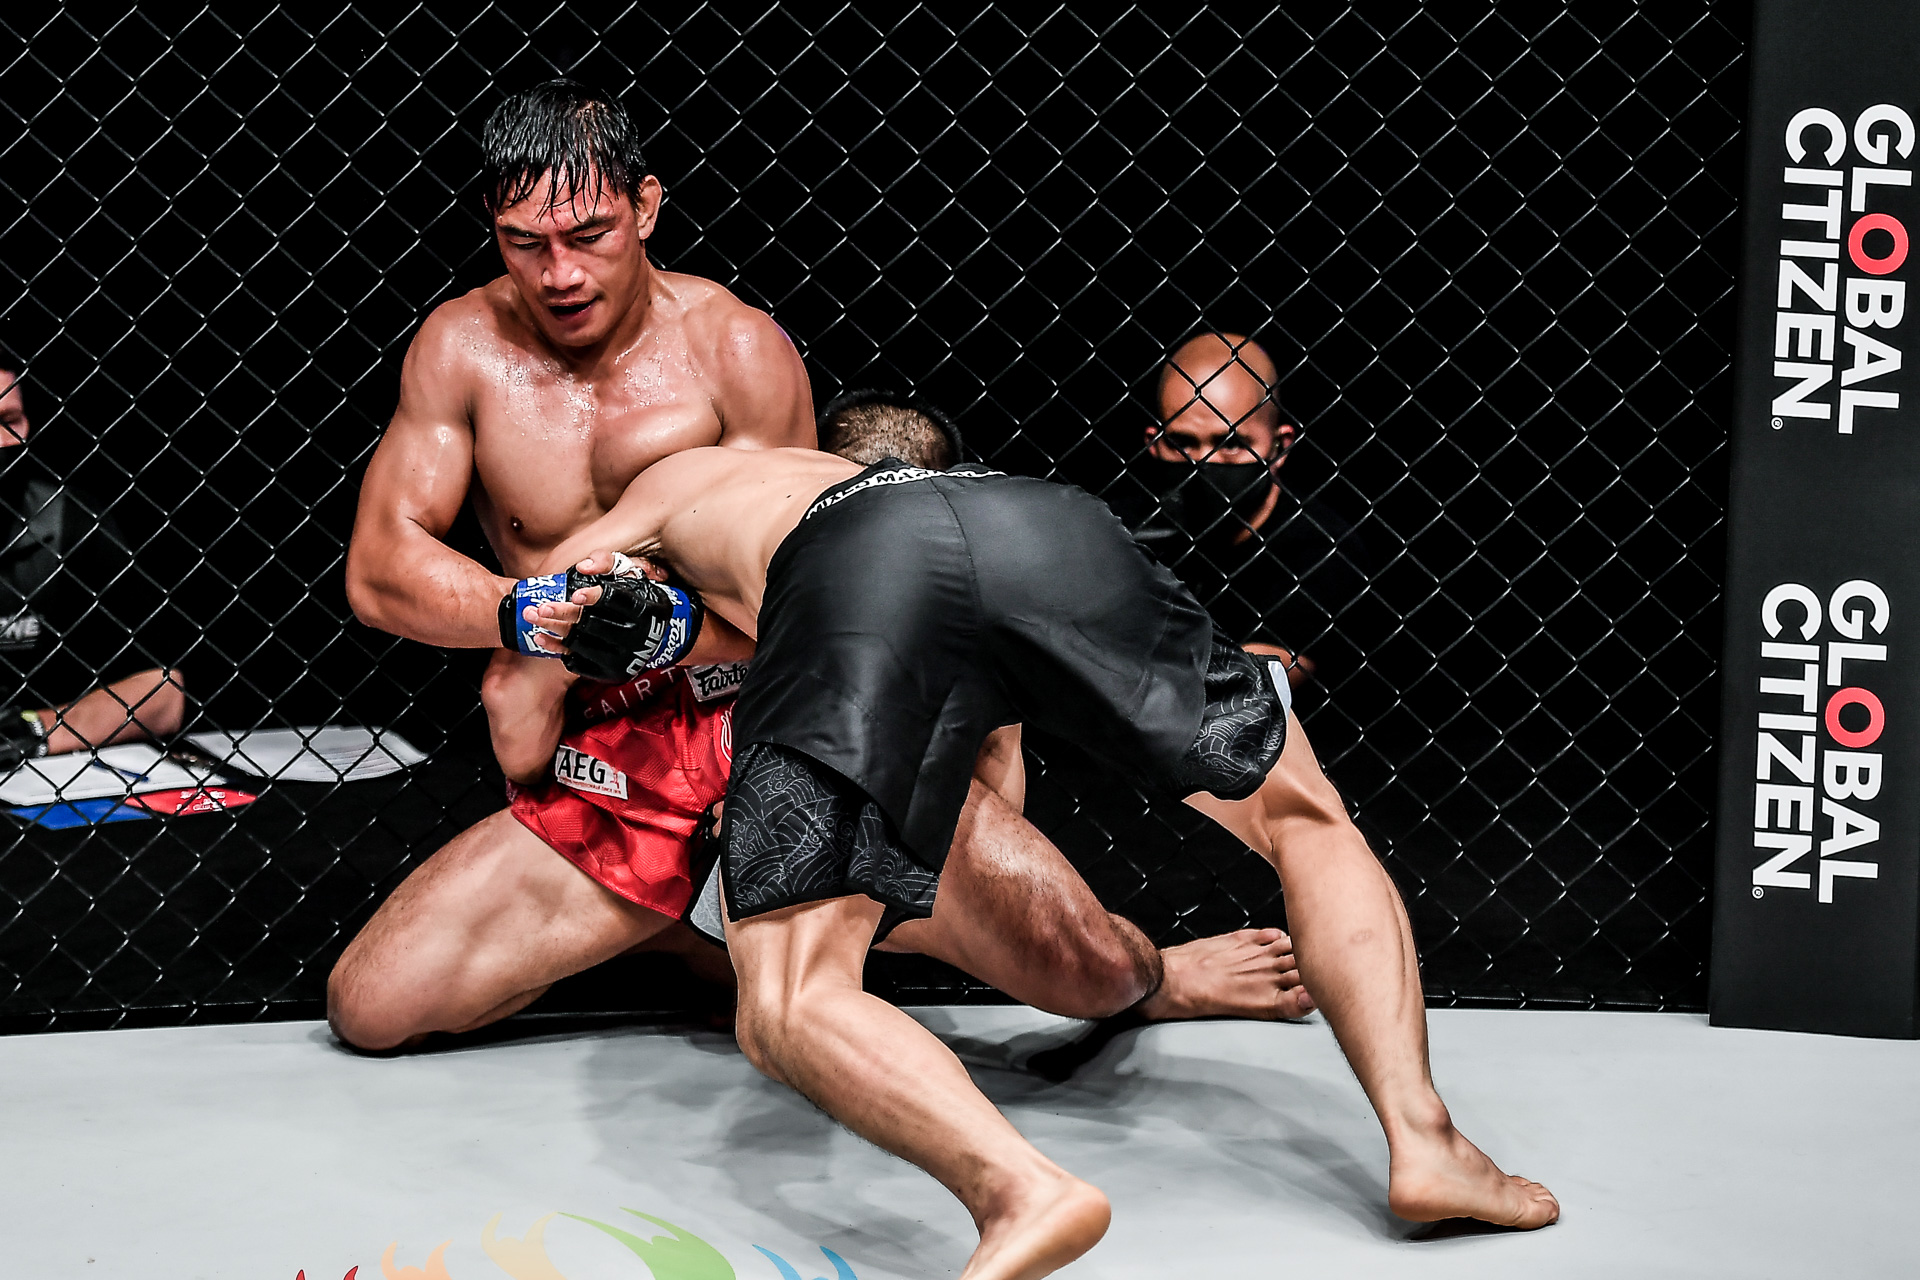 Pictures from the lightweight showdown between Eduard Folayang and Zhang Lipeng at ONE: BATTLEGROUND II